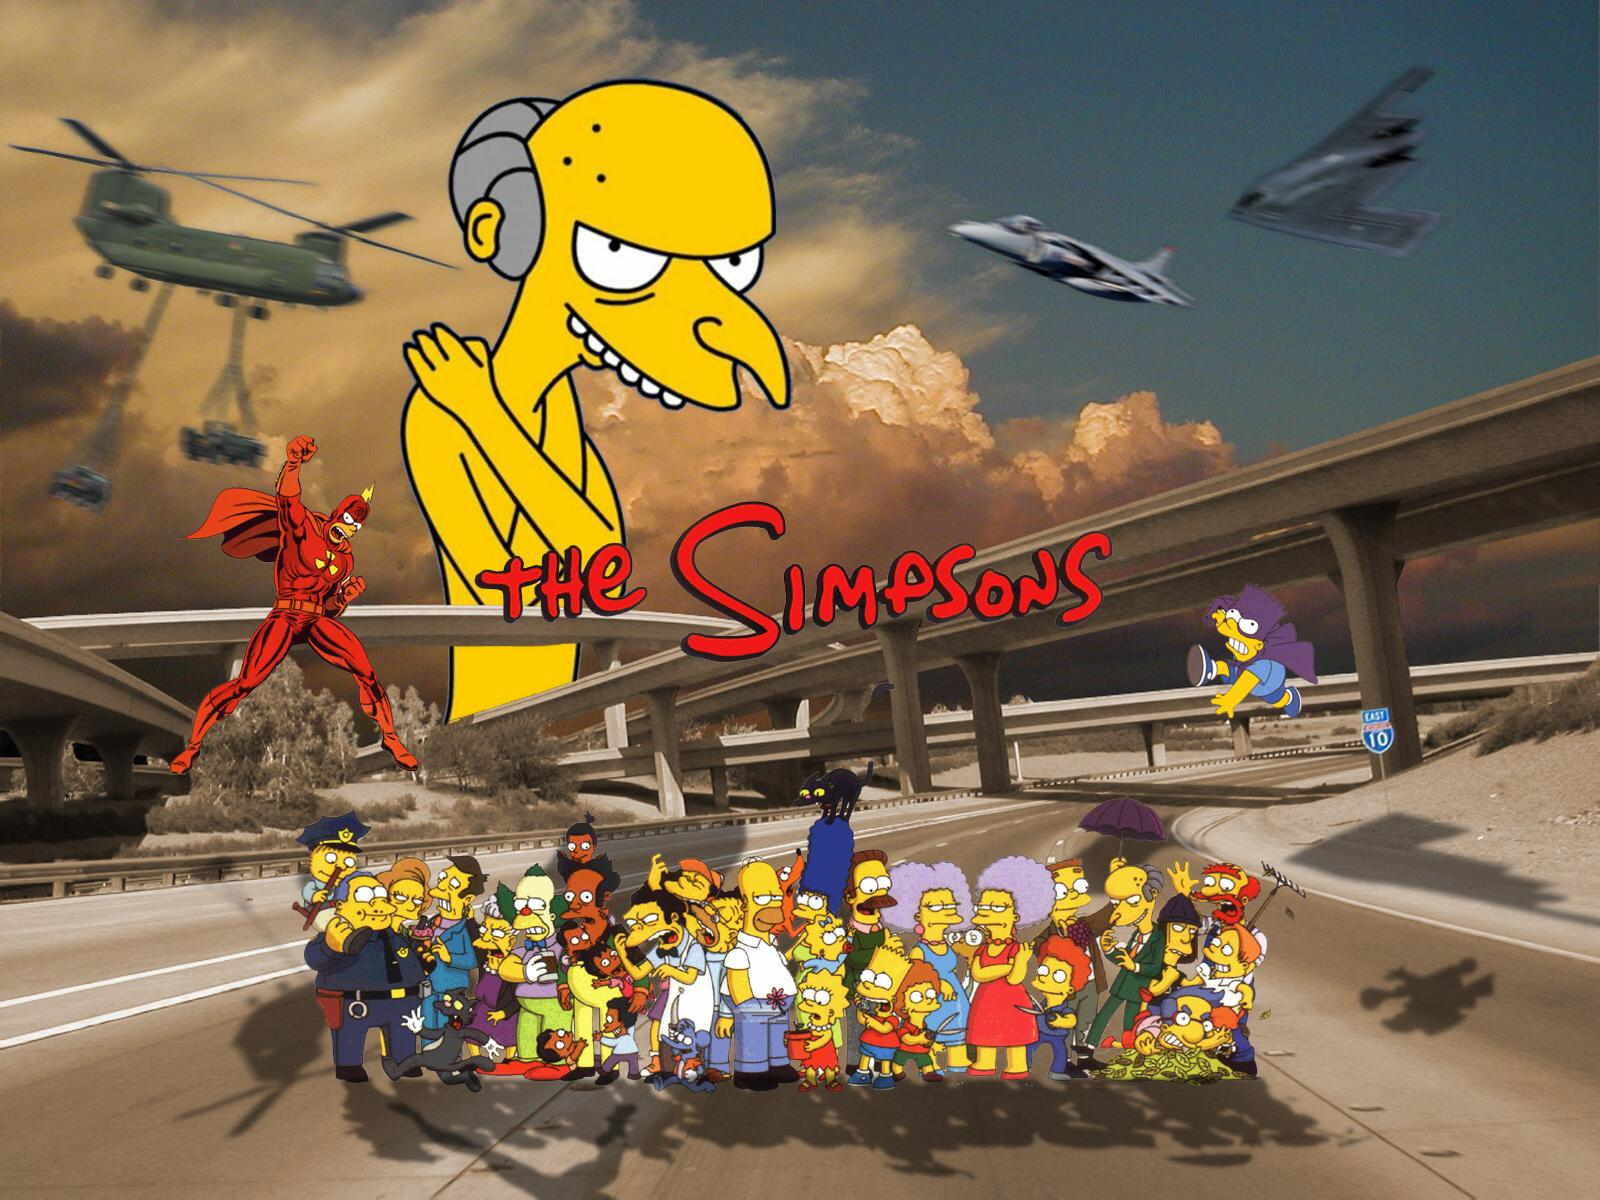 Dowload Amazing The Simpsons Wallpaper Hd Pics Fresh Images Hd